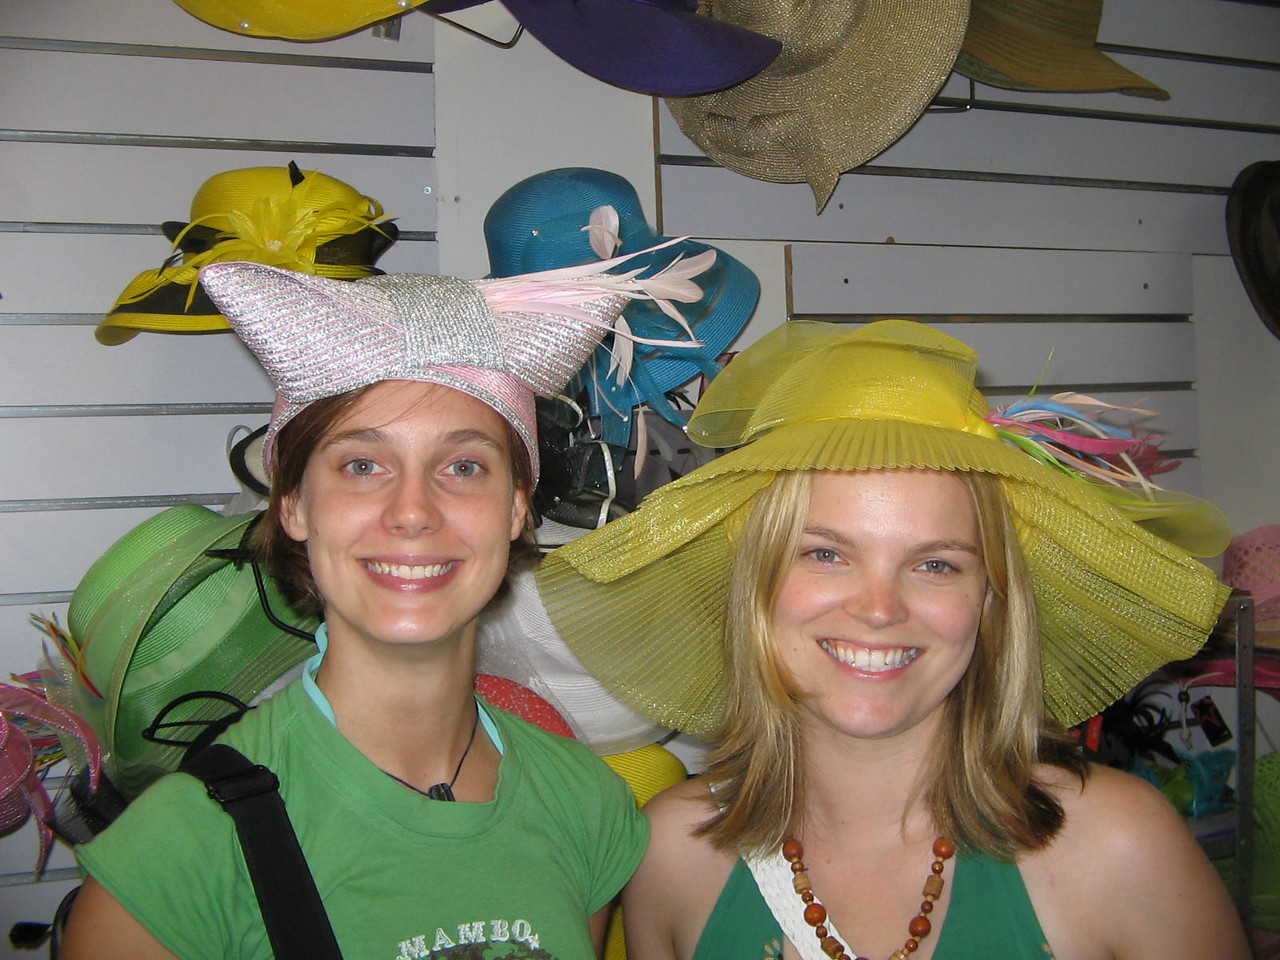 me and kate and our lovely hat choices